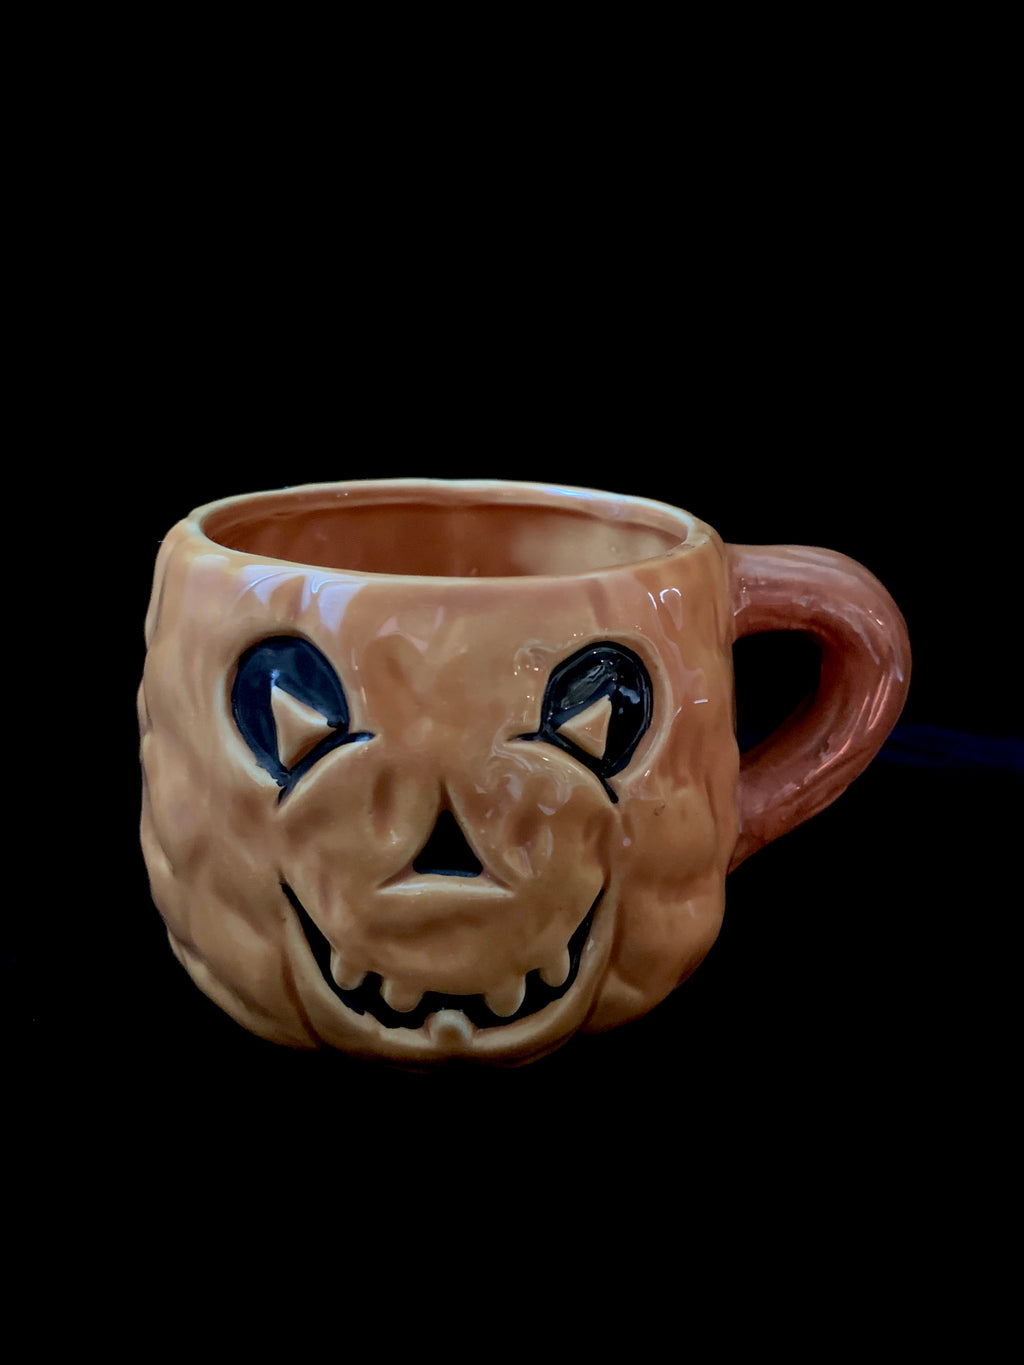 Jack O'Lantern Planter/Mug by Holland Floral